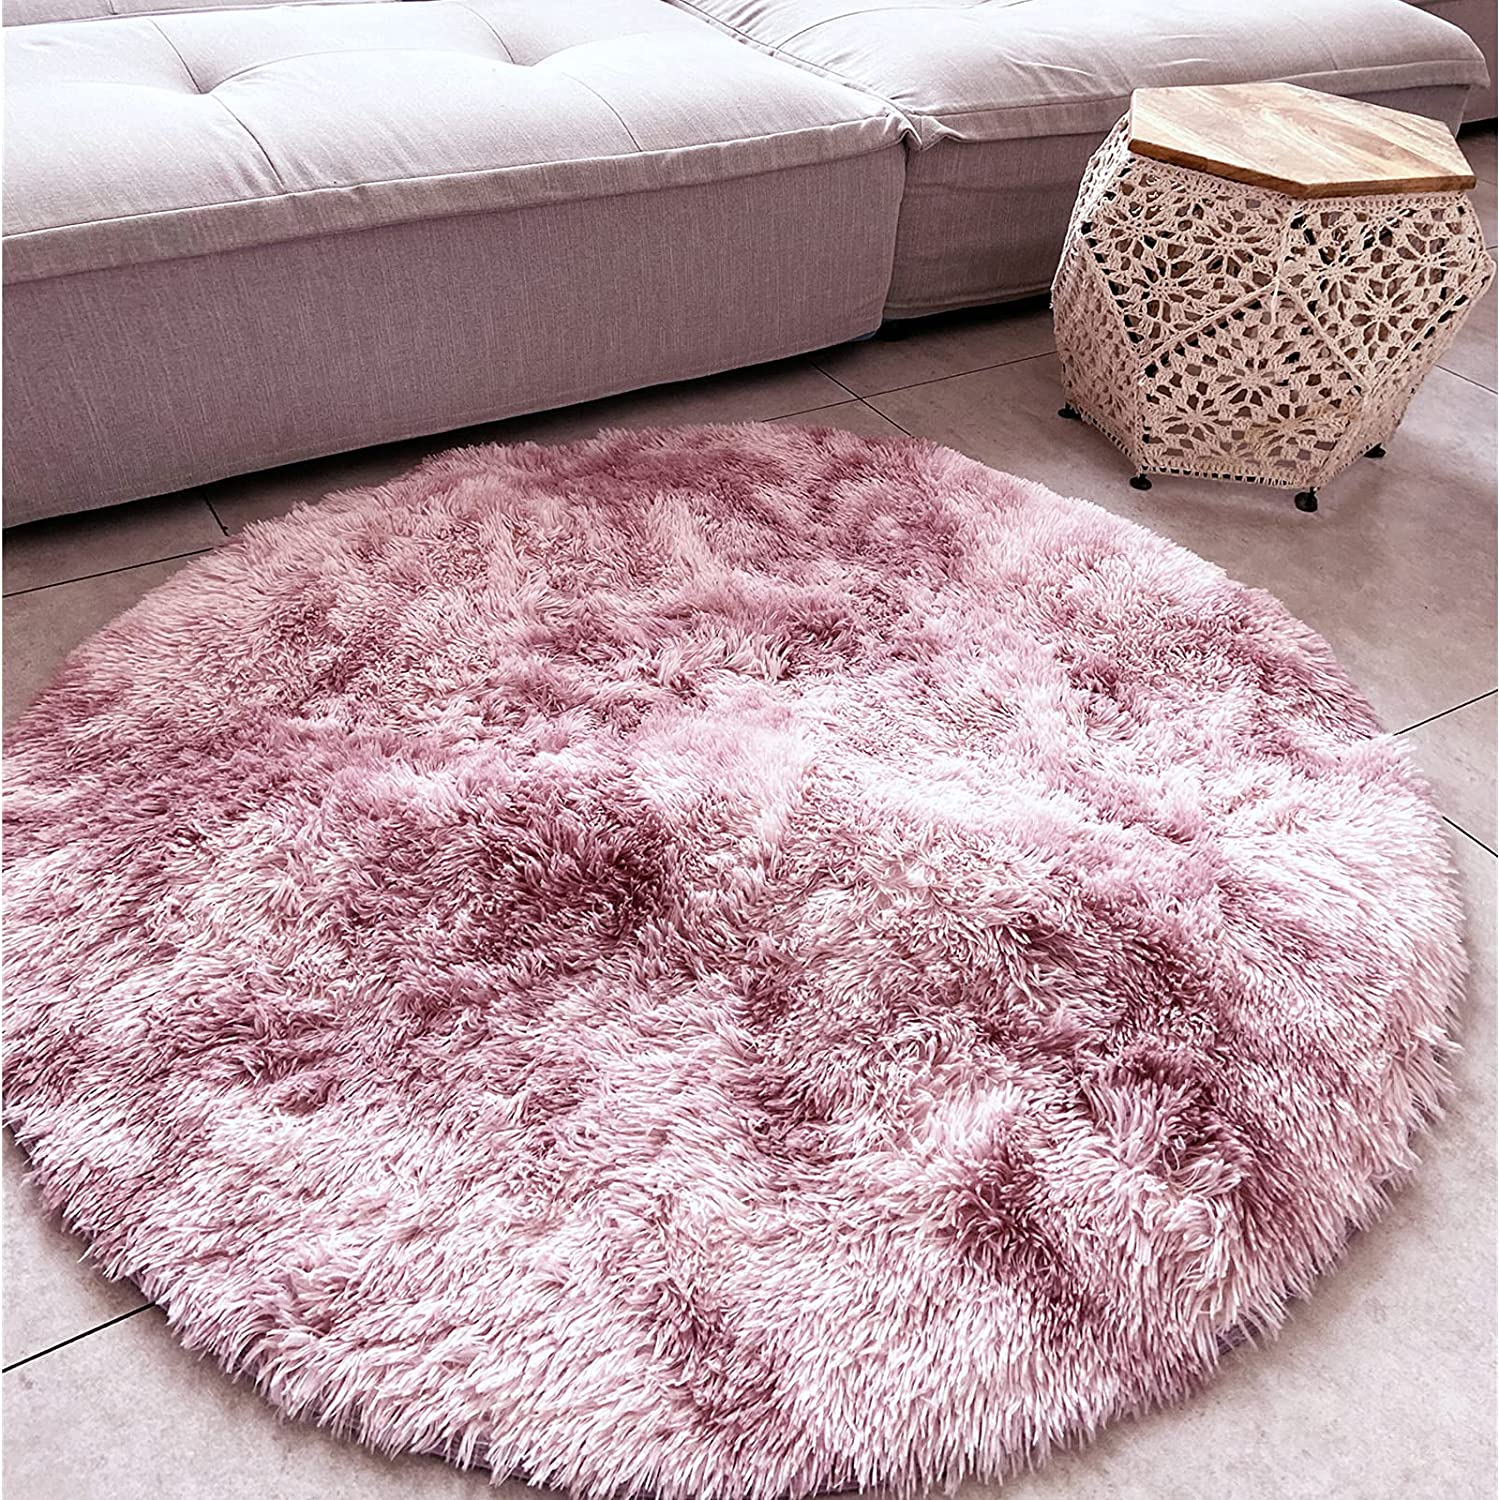 Faux Fur Rug,Area Rug Ultra Soft Gradient tie-Dyed Rugs for Living Room,Small Rug for Home Decor Living Room Decor Bedroom for Girls Boys Teen Room Decor Nursery Decor,Round 4 ft,Pink-Purple,1 pcs.